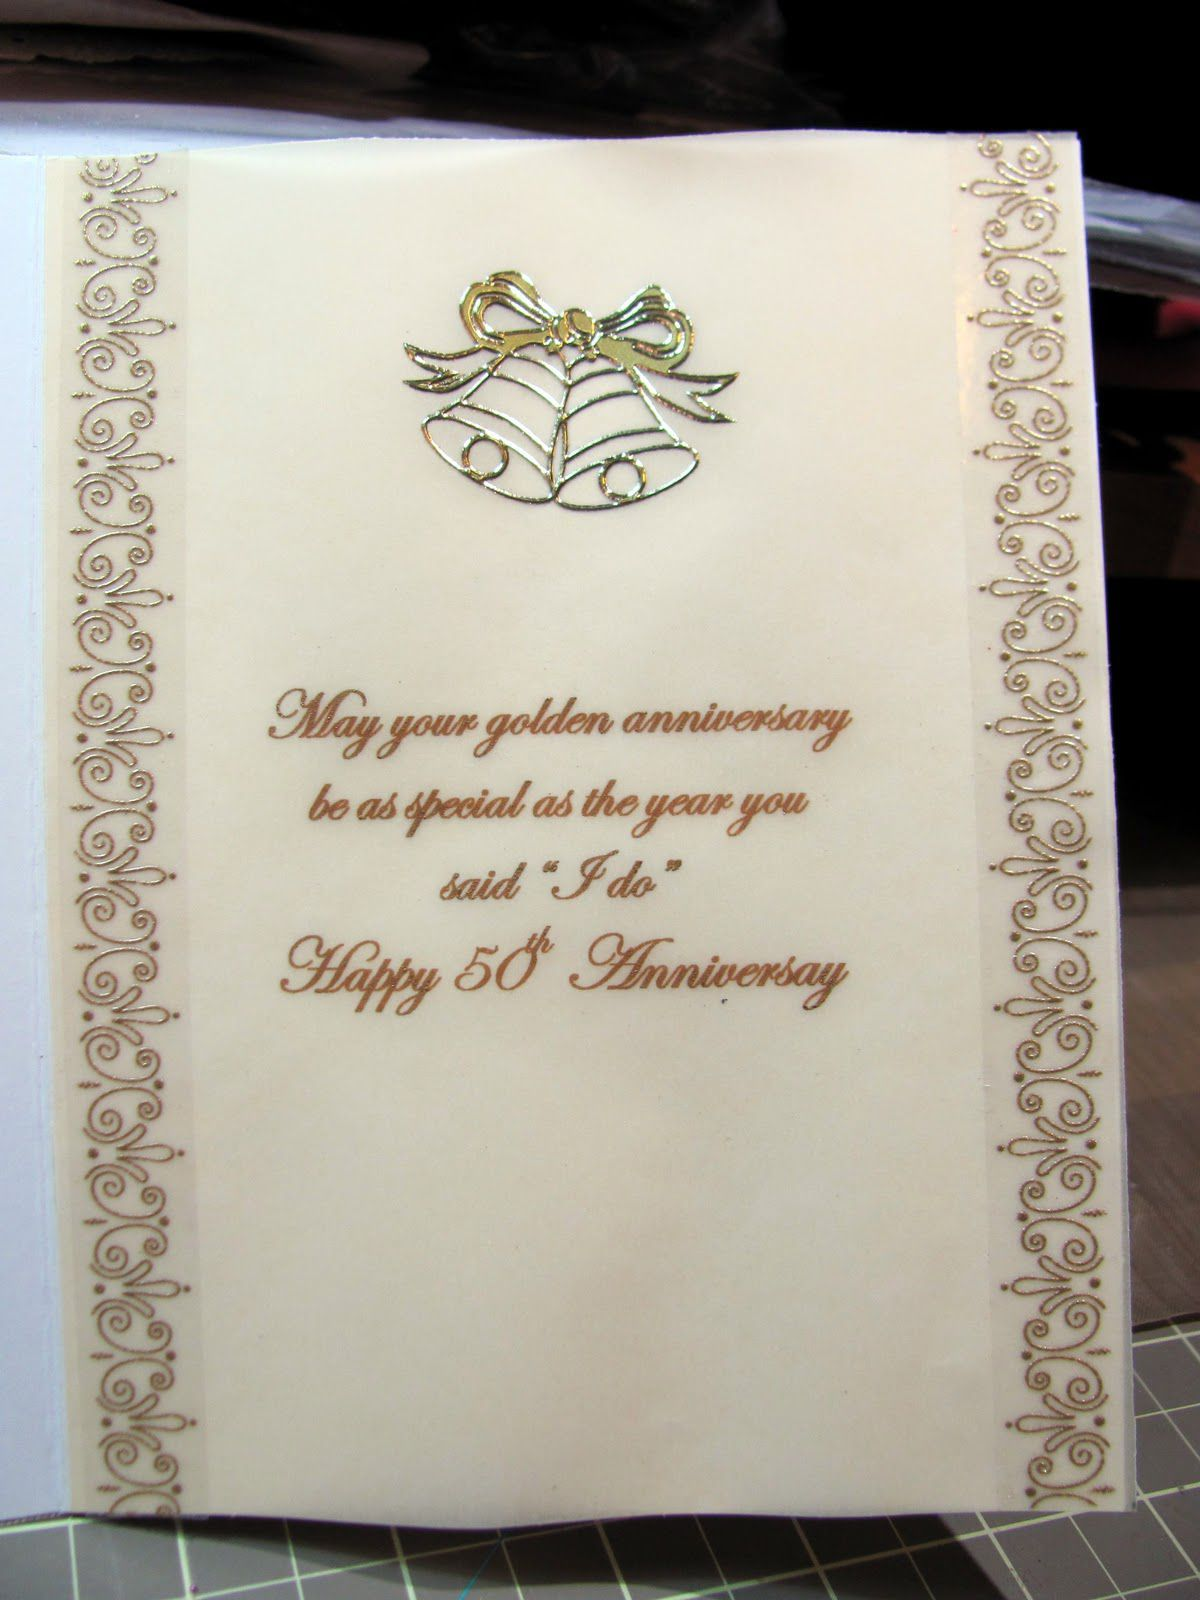 Anniversary invitations wording samples anniversary invitations anniversary invitations wording samples filmwisefo